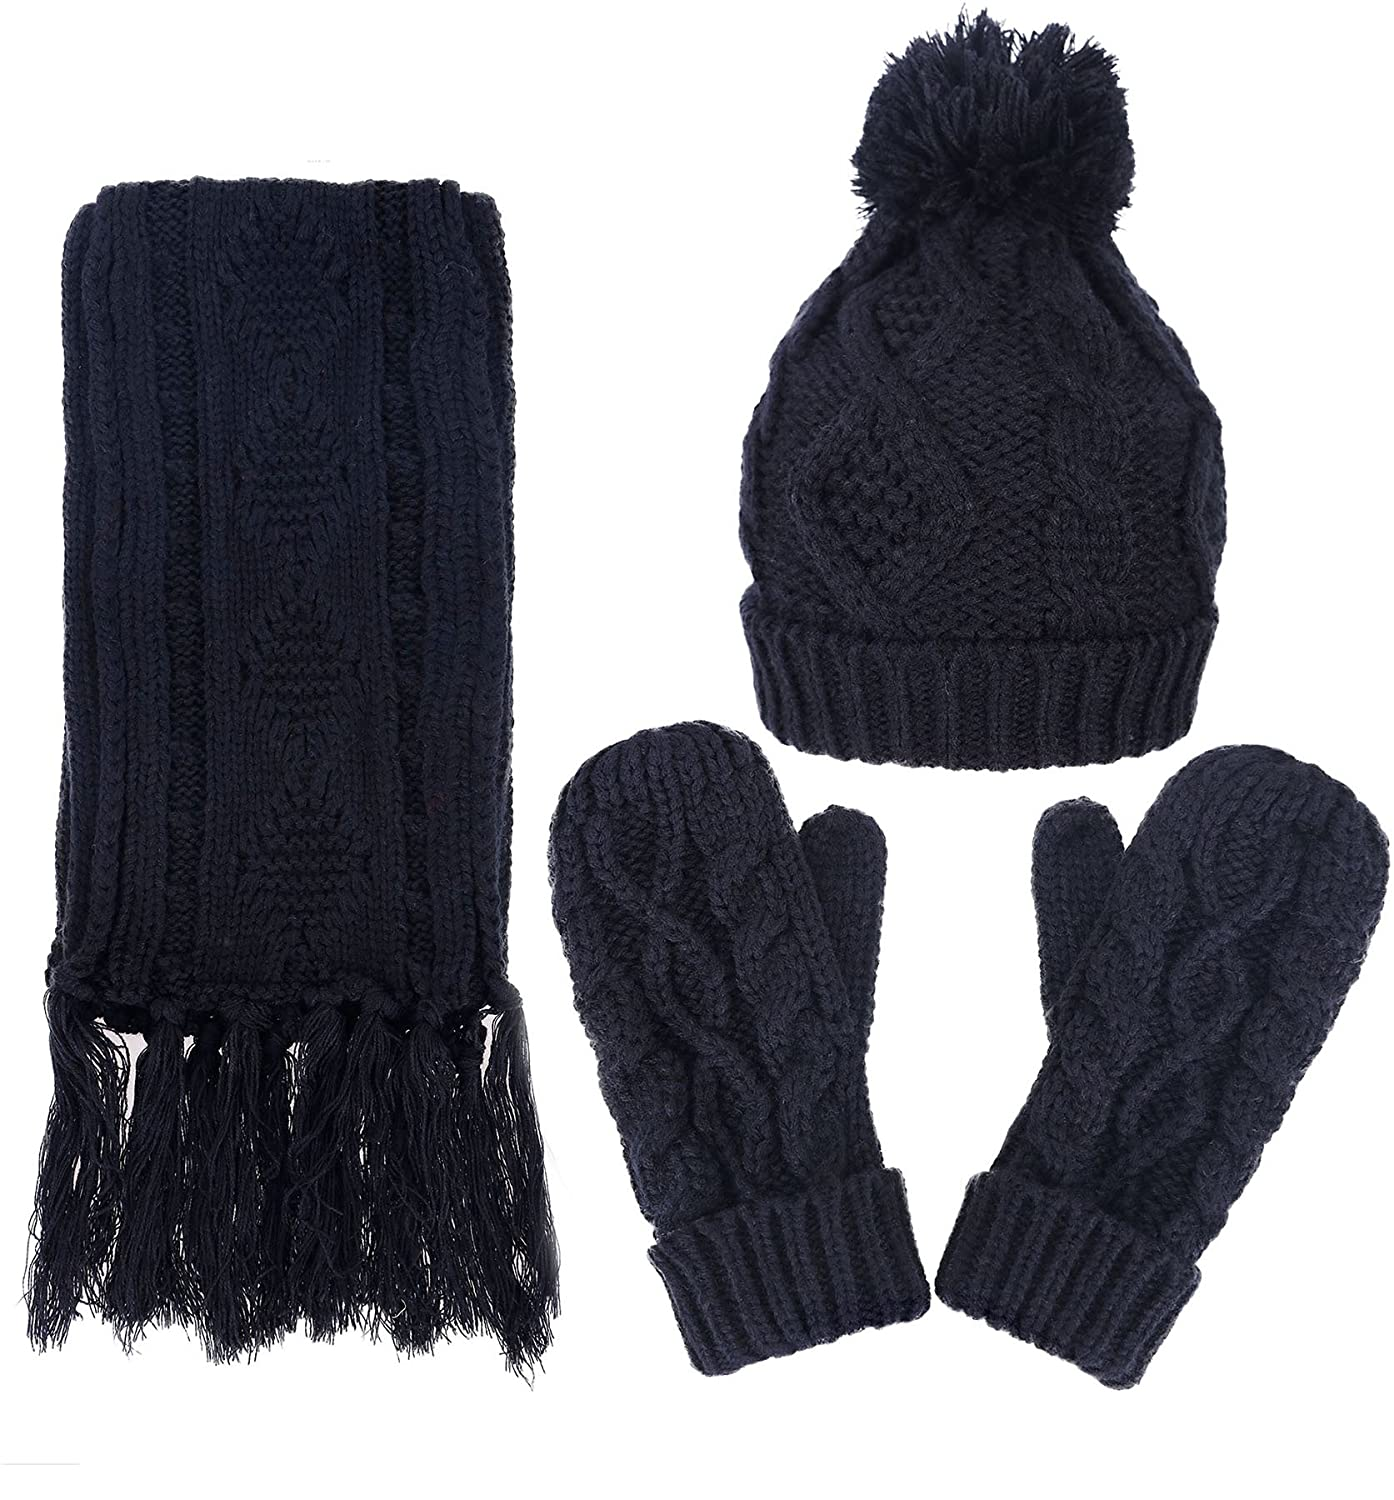 bb93db430e007 Thick chunky cable knit design. Fleece lined offers added warmth 3 Piece  Winter Set - Long folded pompom beanie